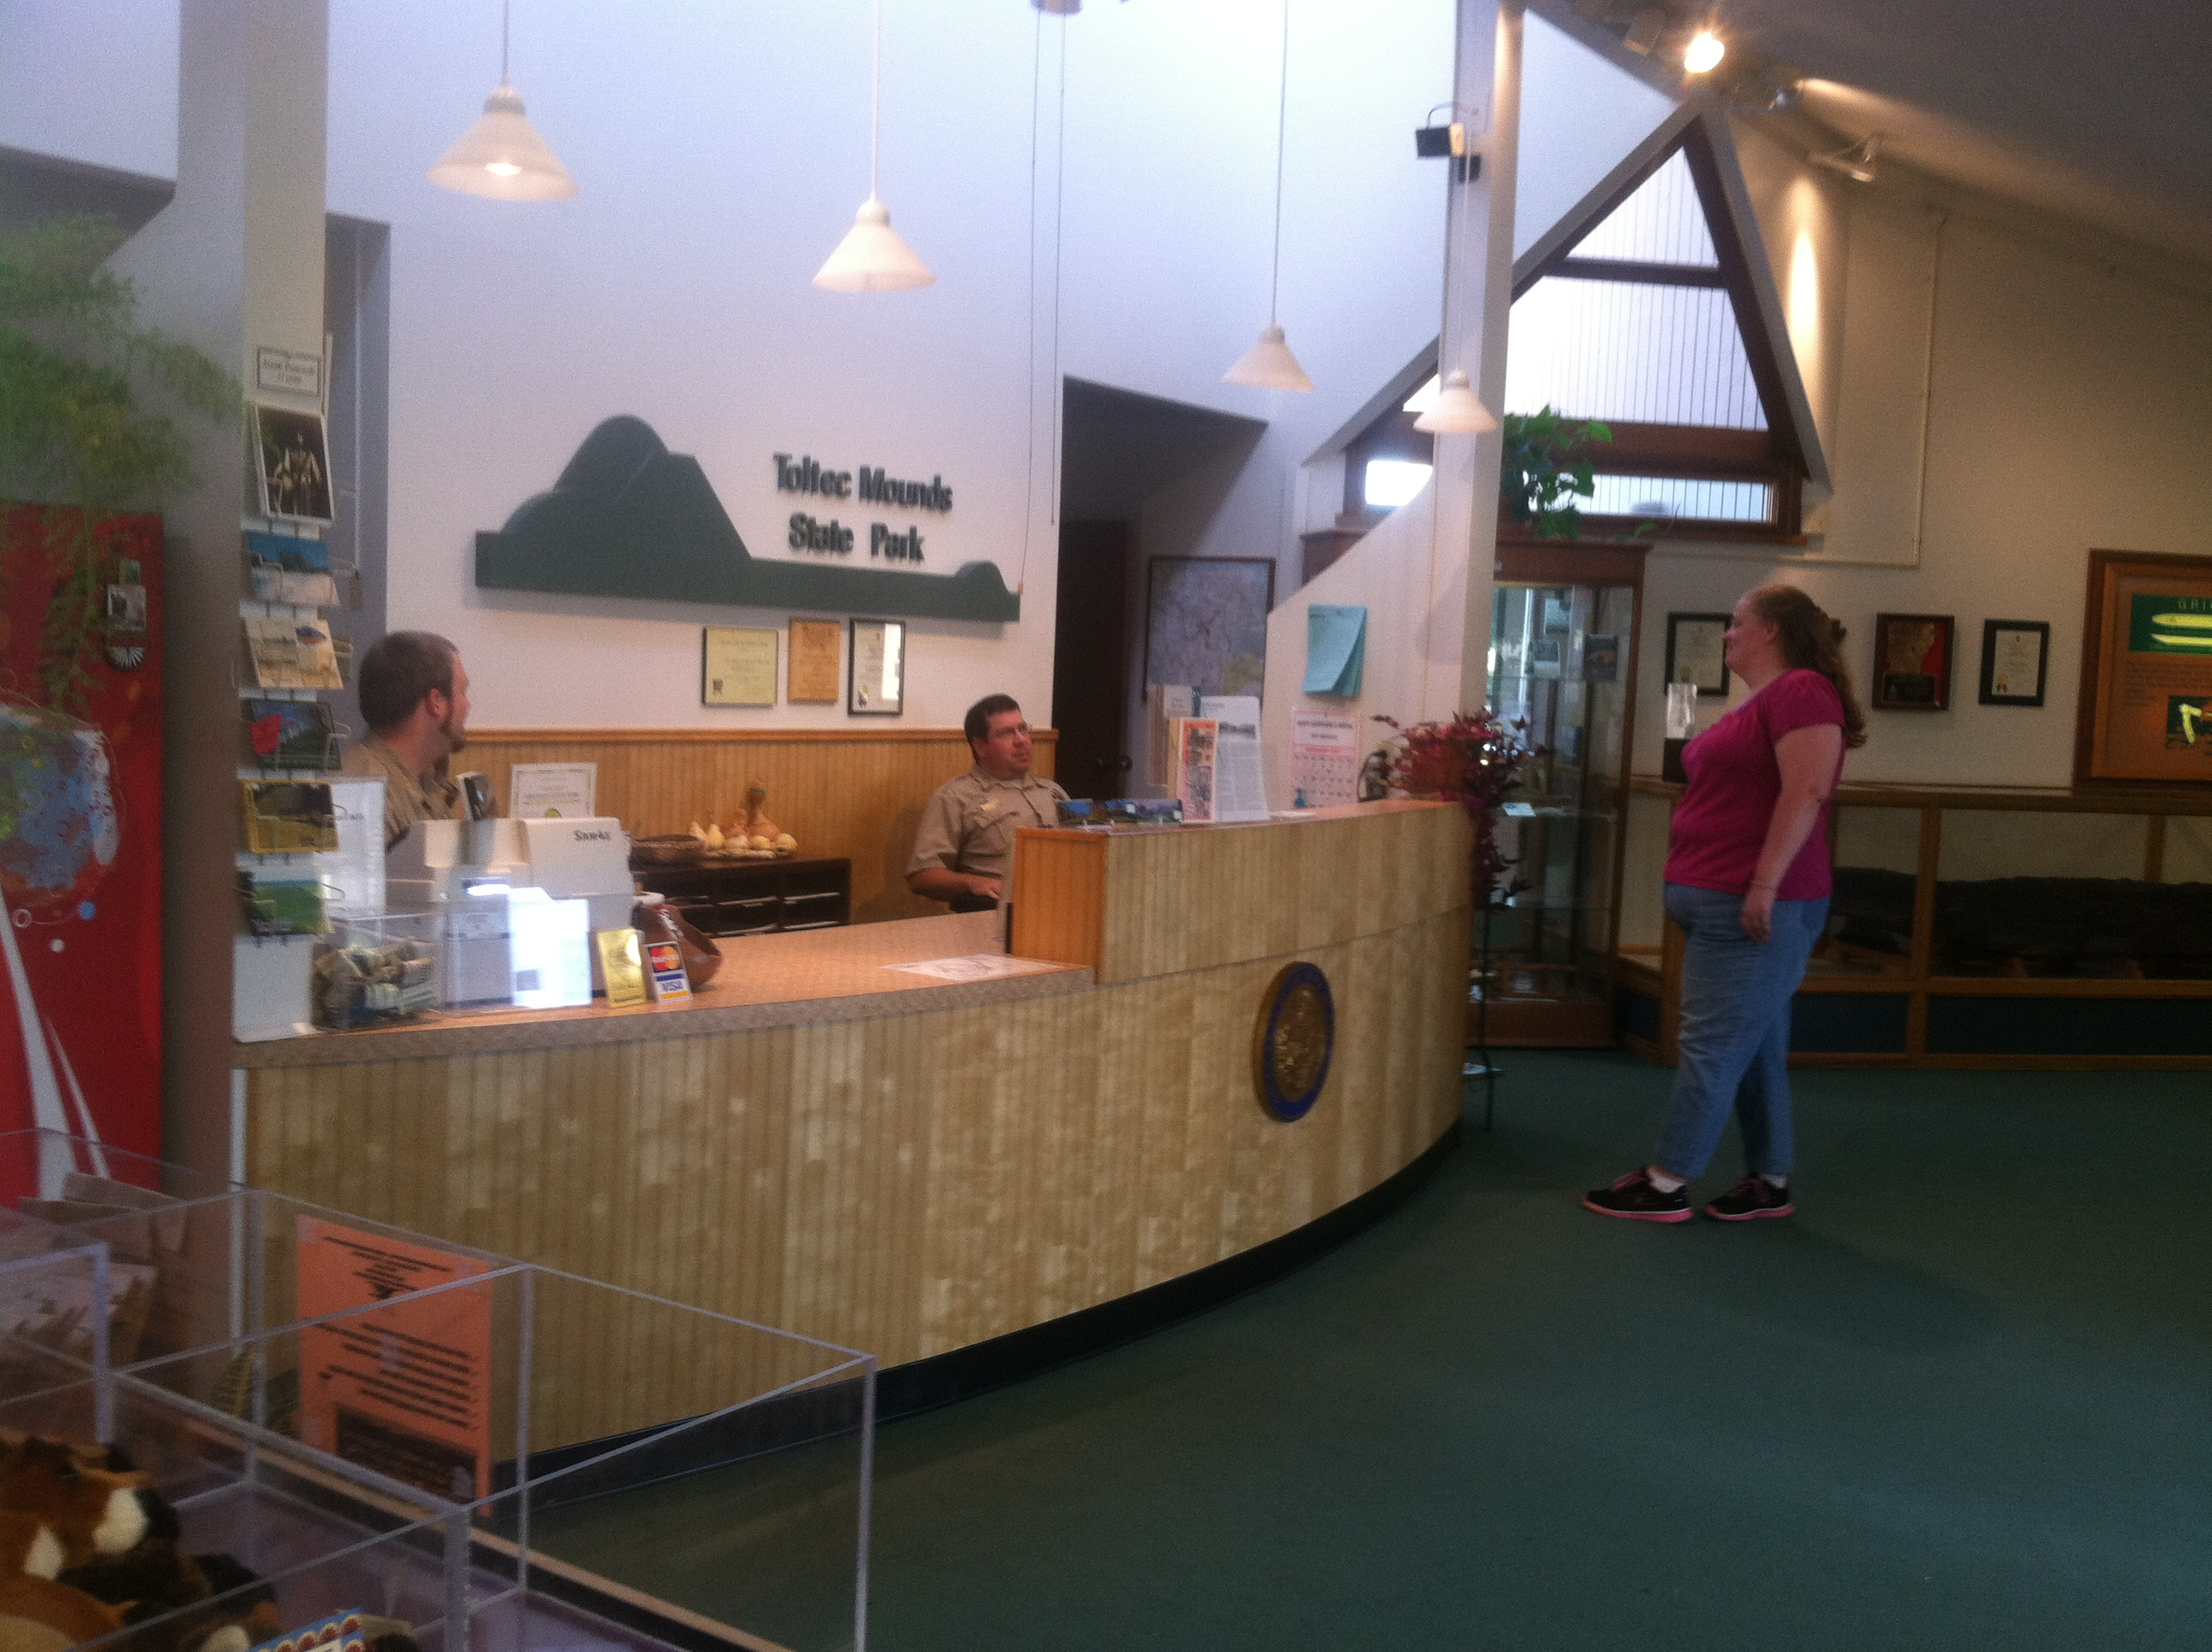 Toltec Mounds State Park Gift Shop